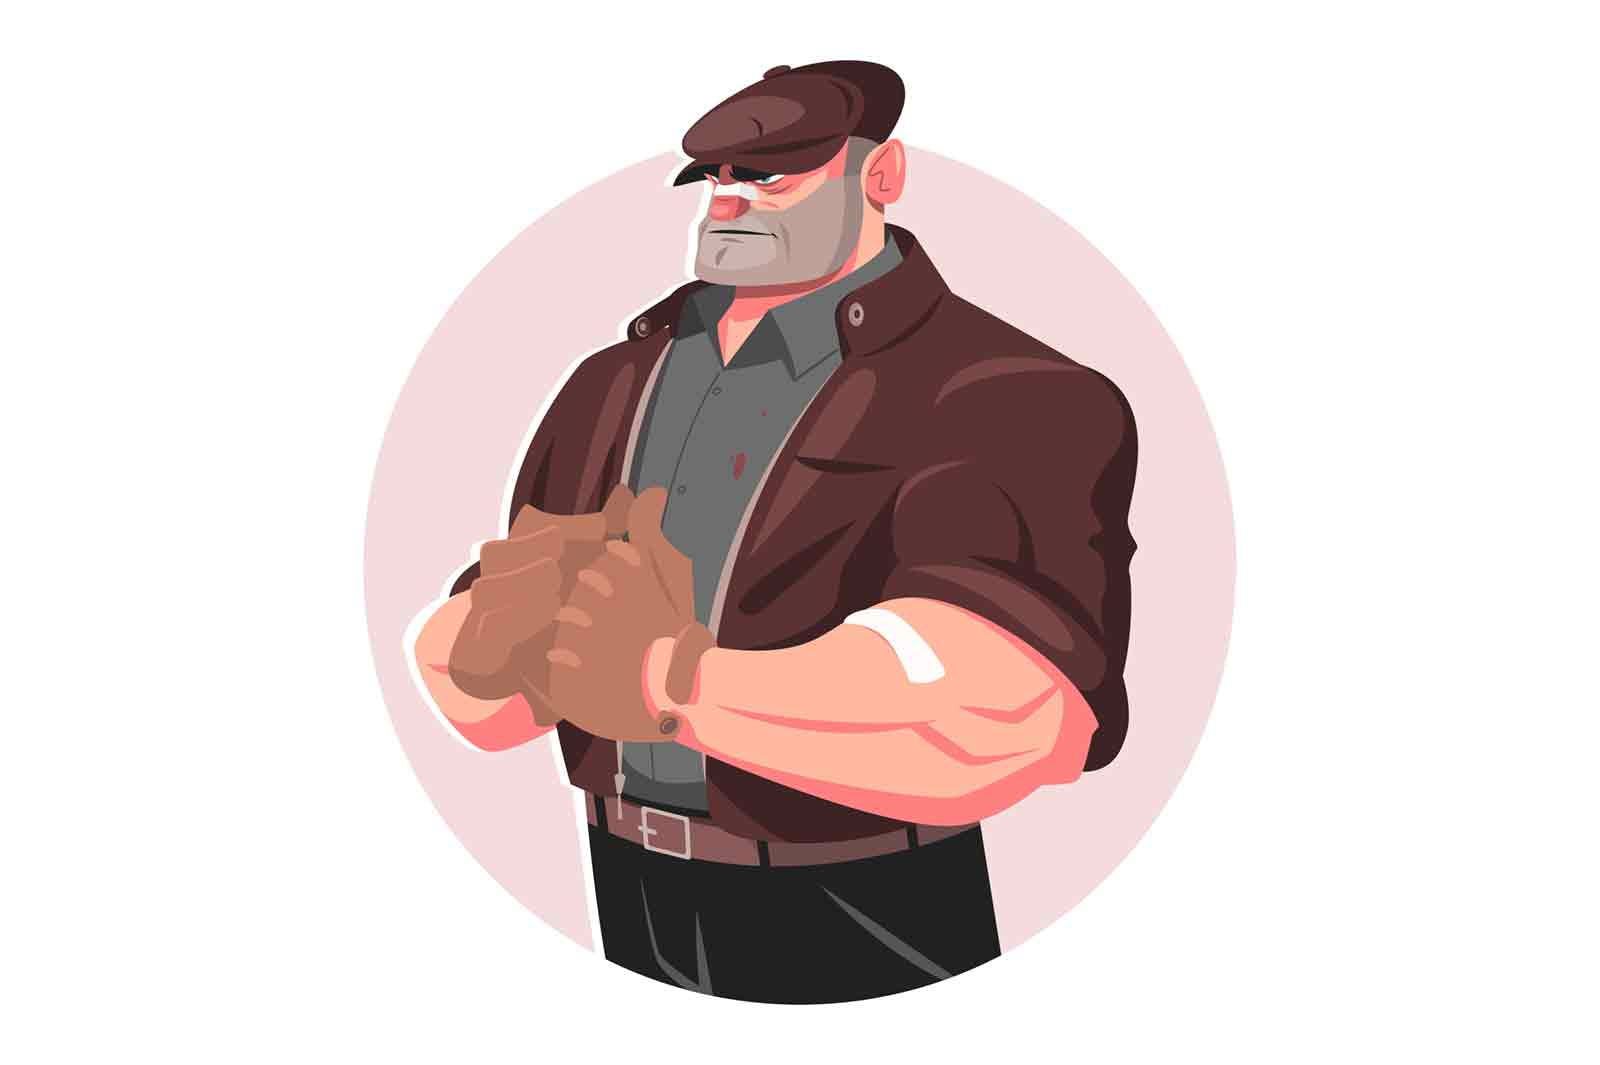 Security guard bouncer man vector illustration. Criminal person with strong huge muscular body flat style. Personal bodyguard and protection concept. Isolated on white background